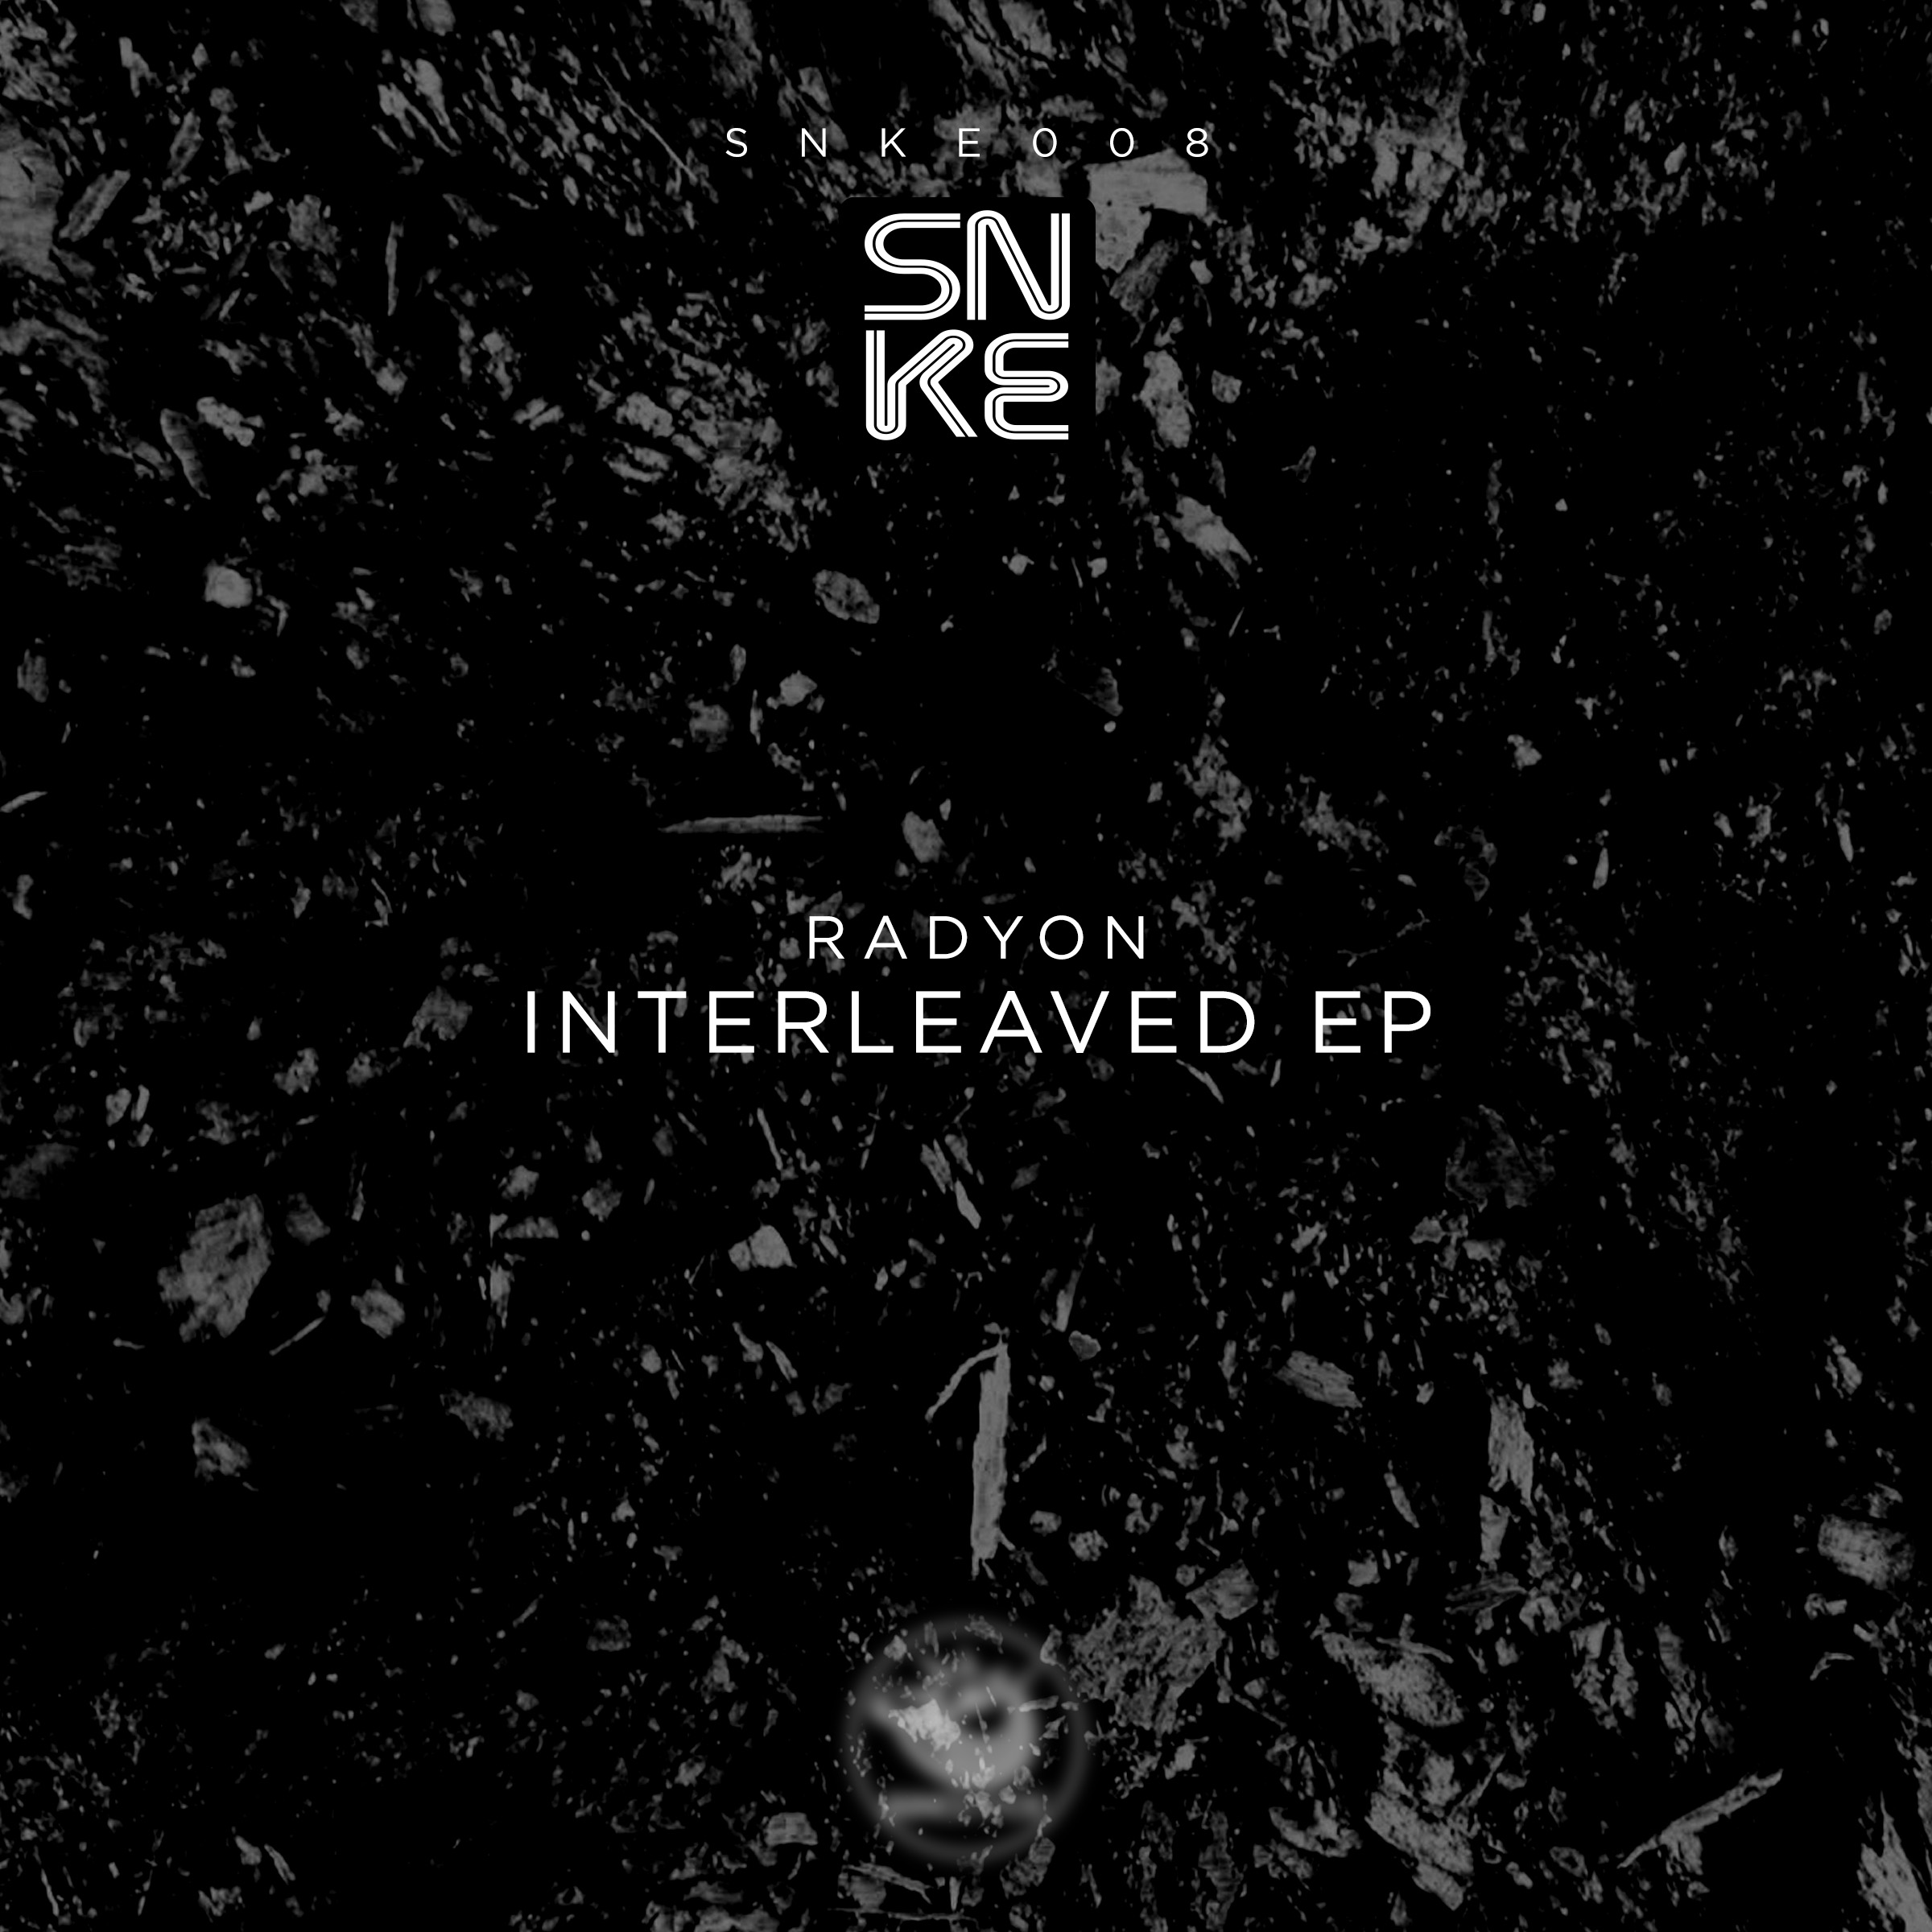 Radyon - Interleaved Ep - SNKE008 Cover